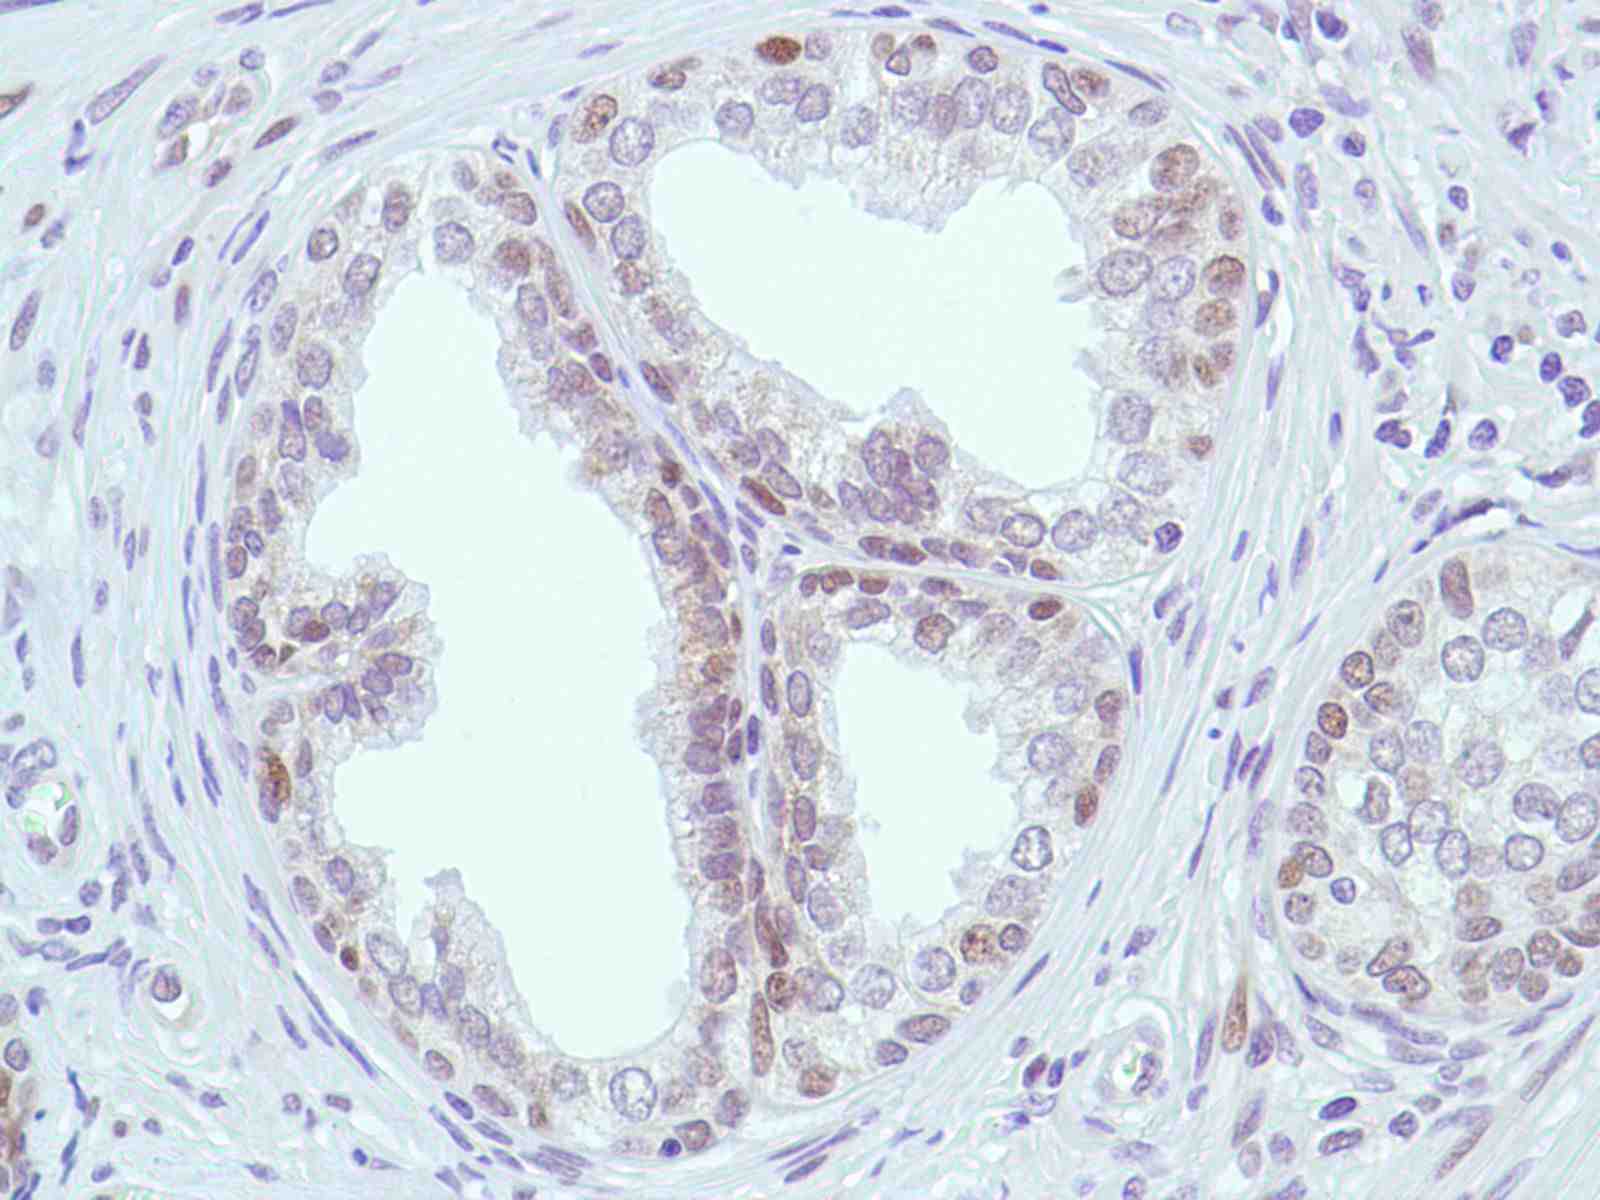 Human Prostate stained with anti-MSH2 antibody